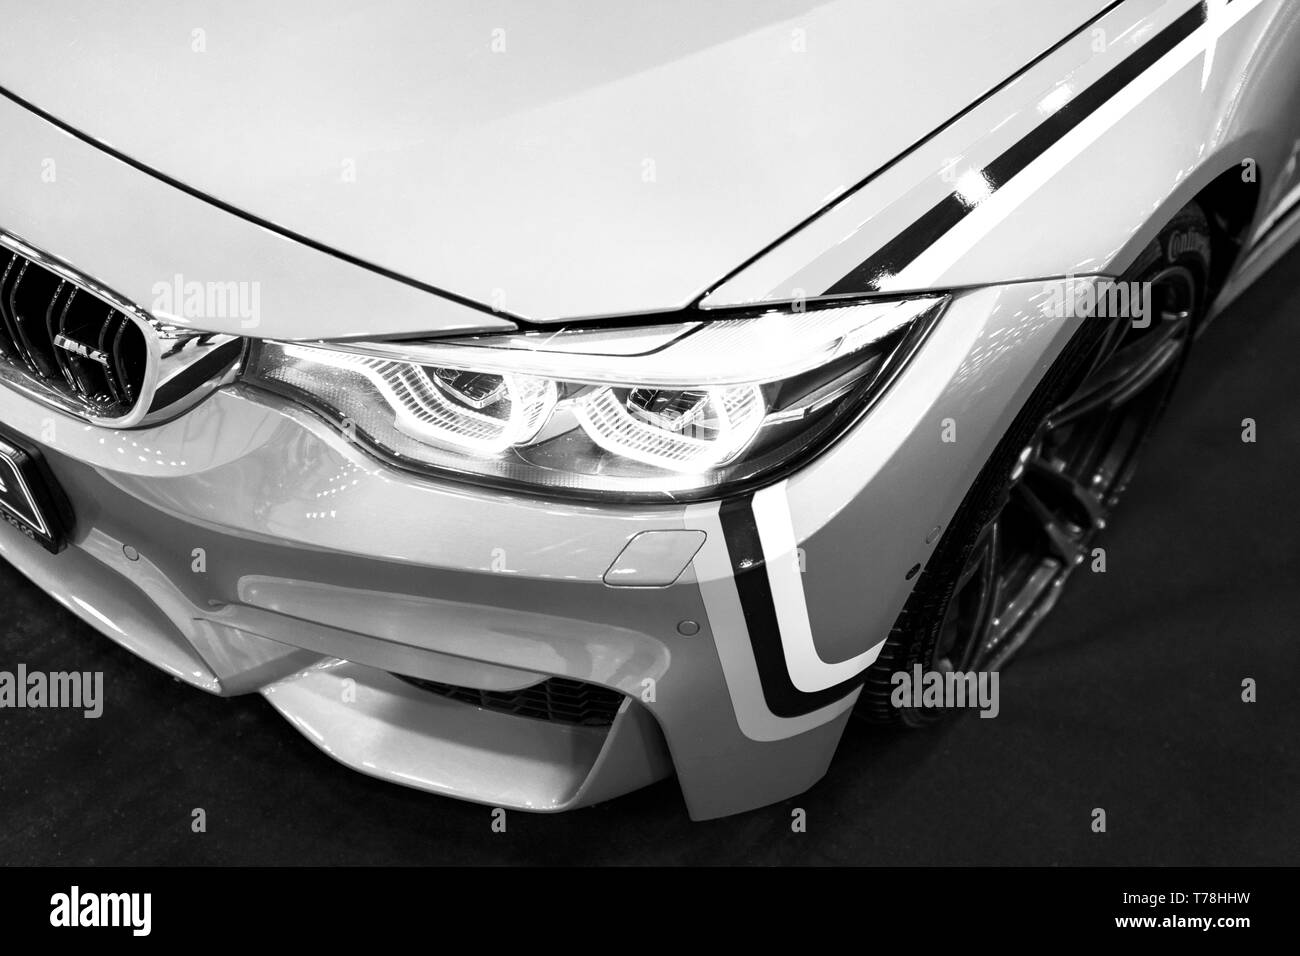 Sankt-Petersburg Russia July 21 2017: Front view of a BMW M4 sports car. M Performance Edition. Car exterior details. Black and white. Photo Taken at  - Stock Image